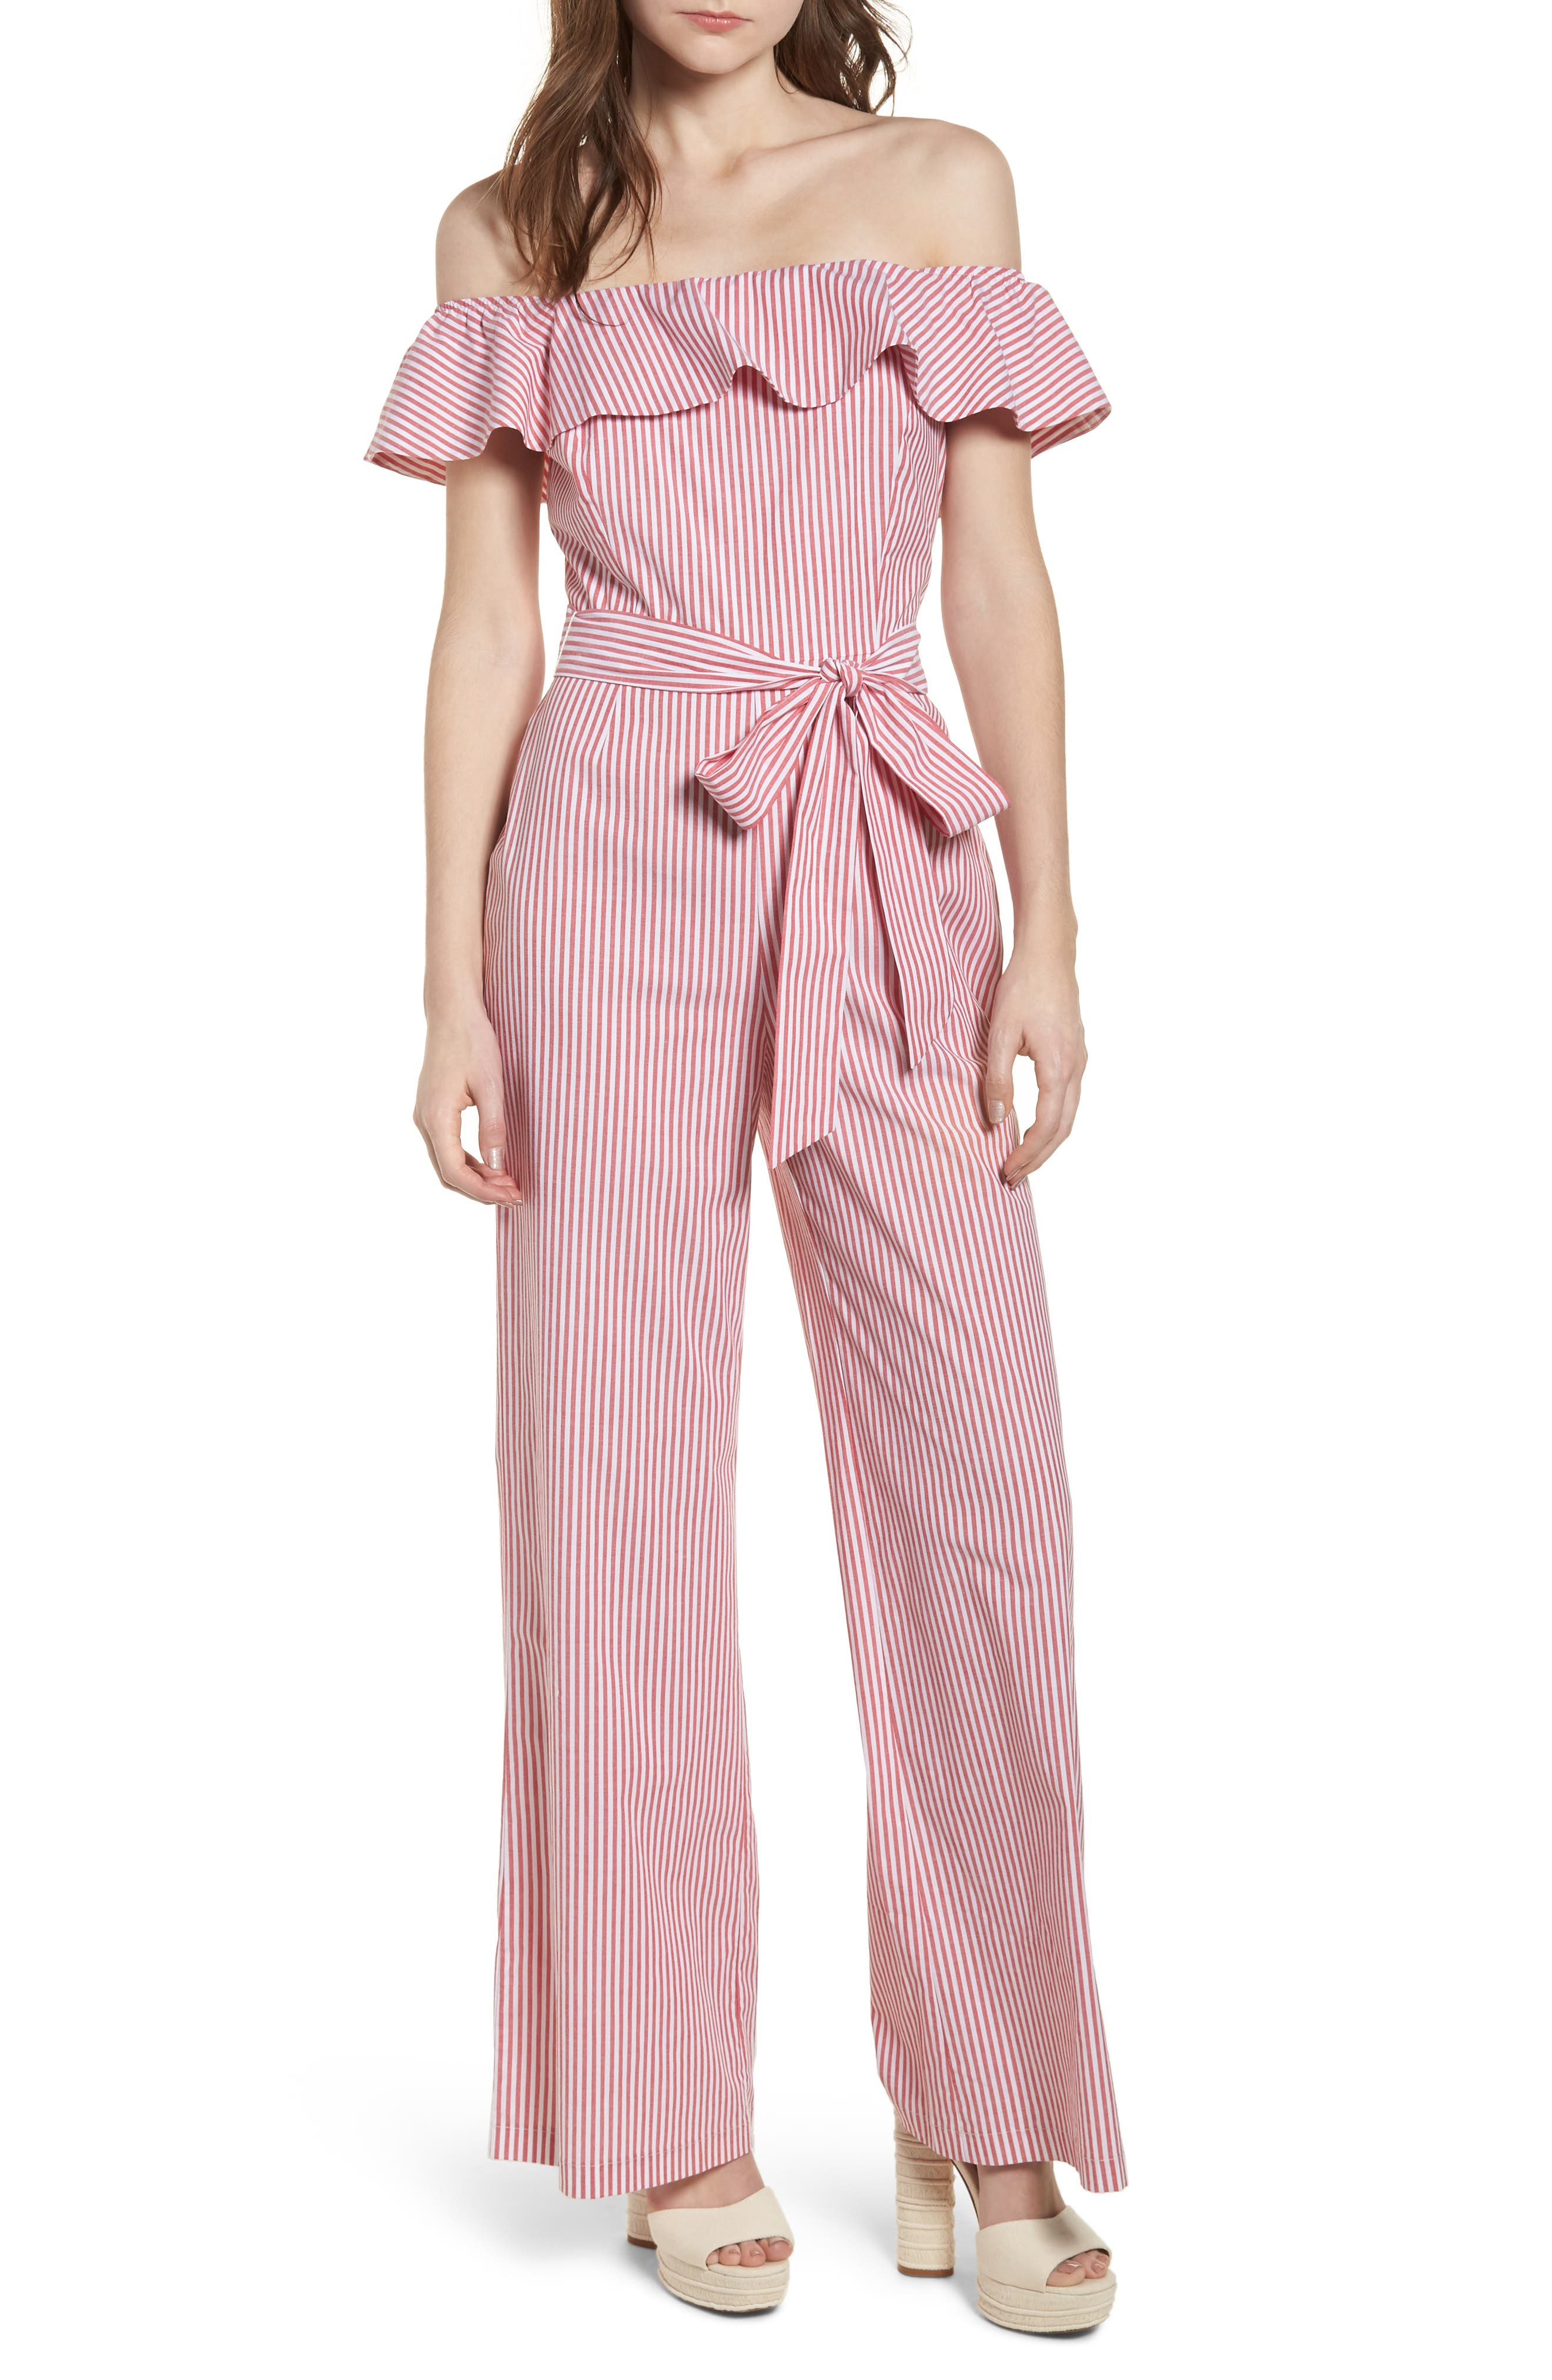 Grenoble Off The Shoulder Jumpsuit,                             Main thumbnail 1, color,                             Red Stripe